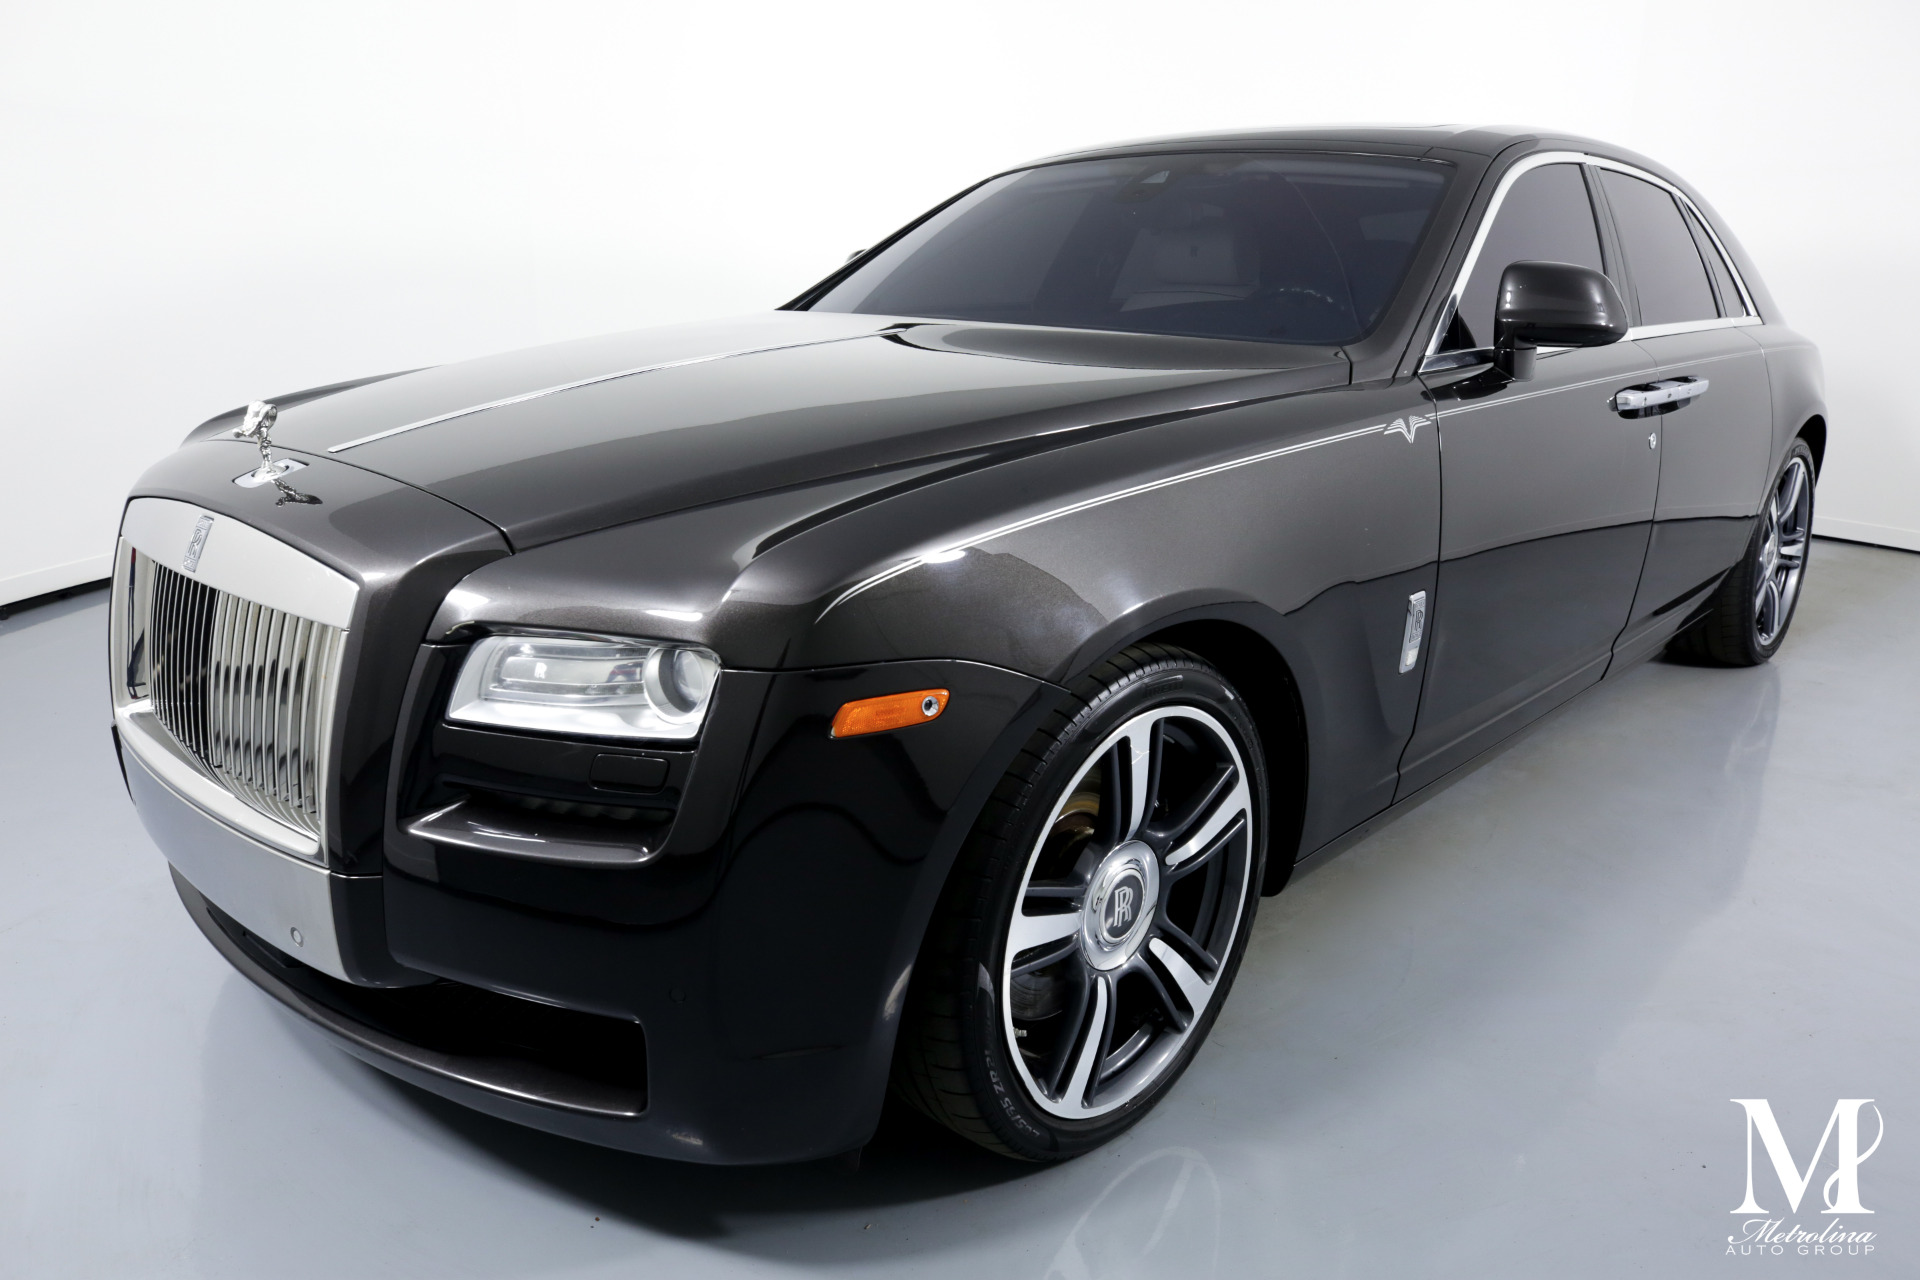 Used 2014 Rolls-Royce Ghost for sale $124,996 at Metrolina Auto Group in Charlotte NC 28217 - 4